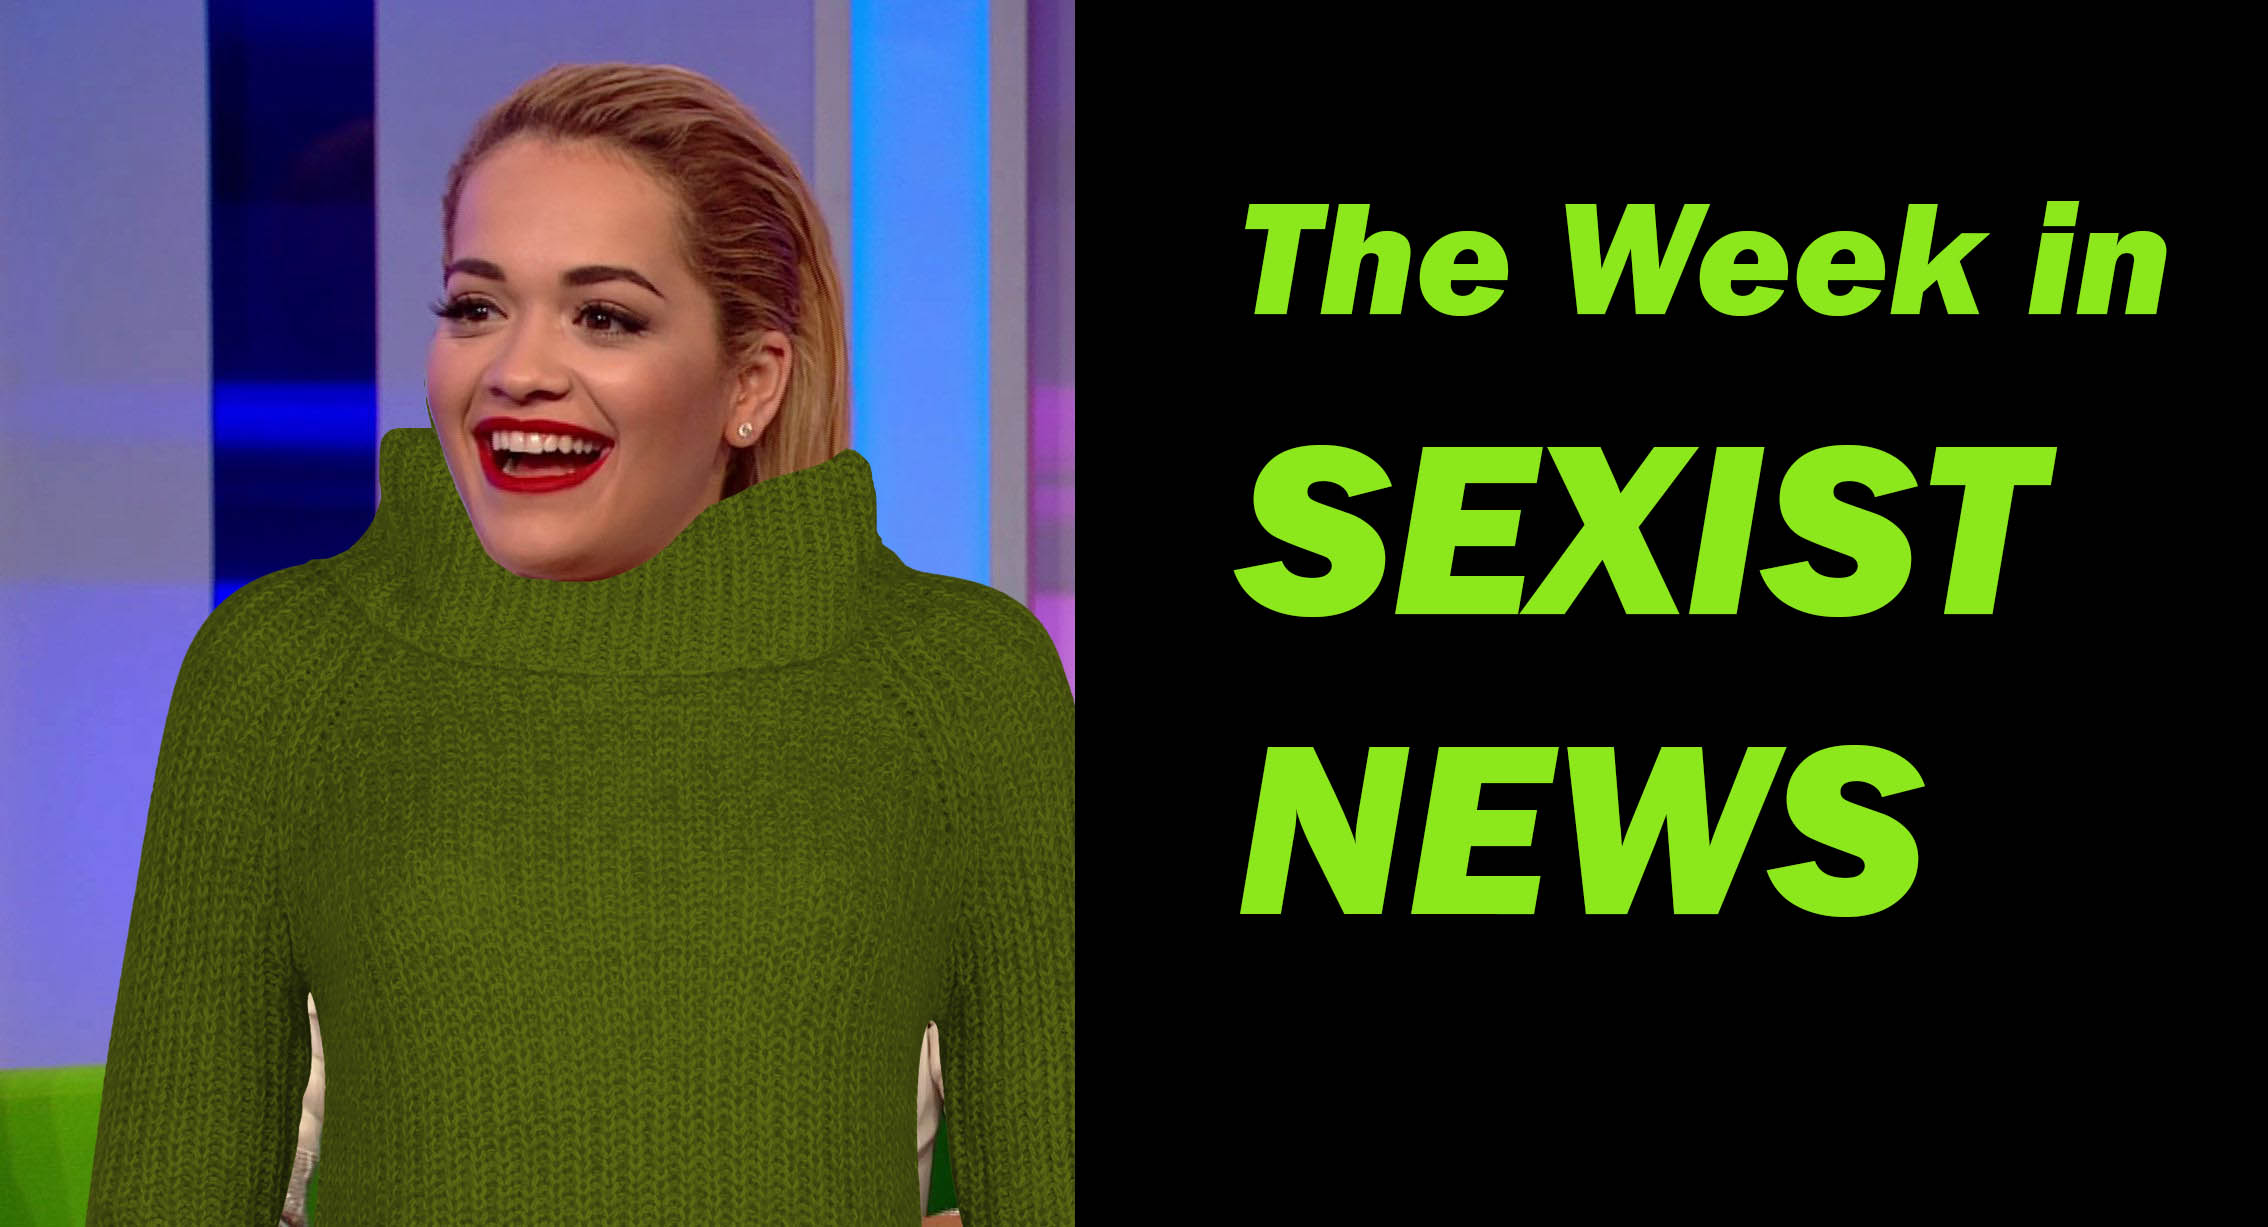 The Week in Sexist News 09/01/15